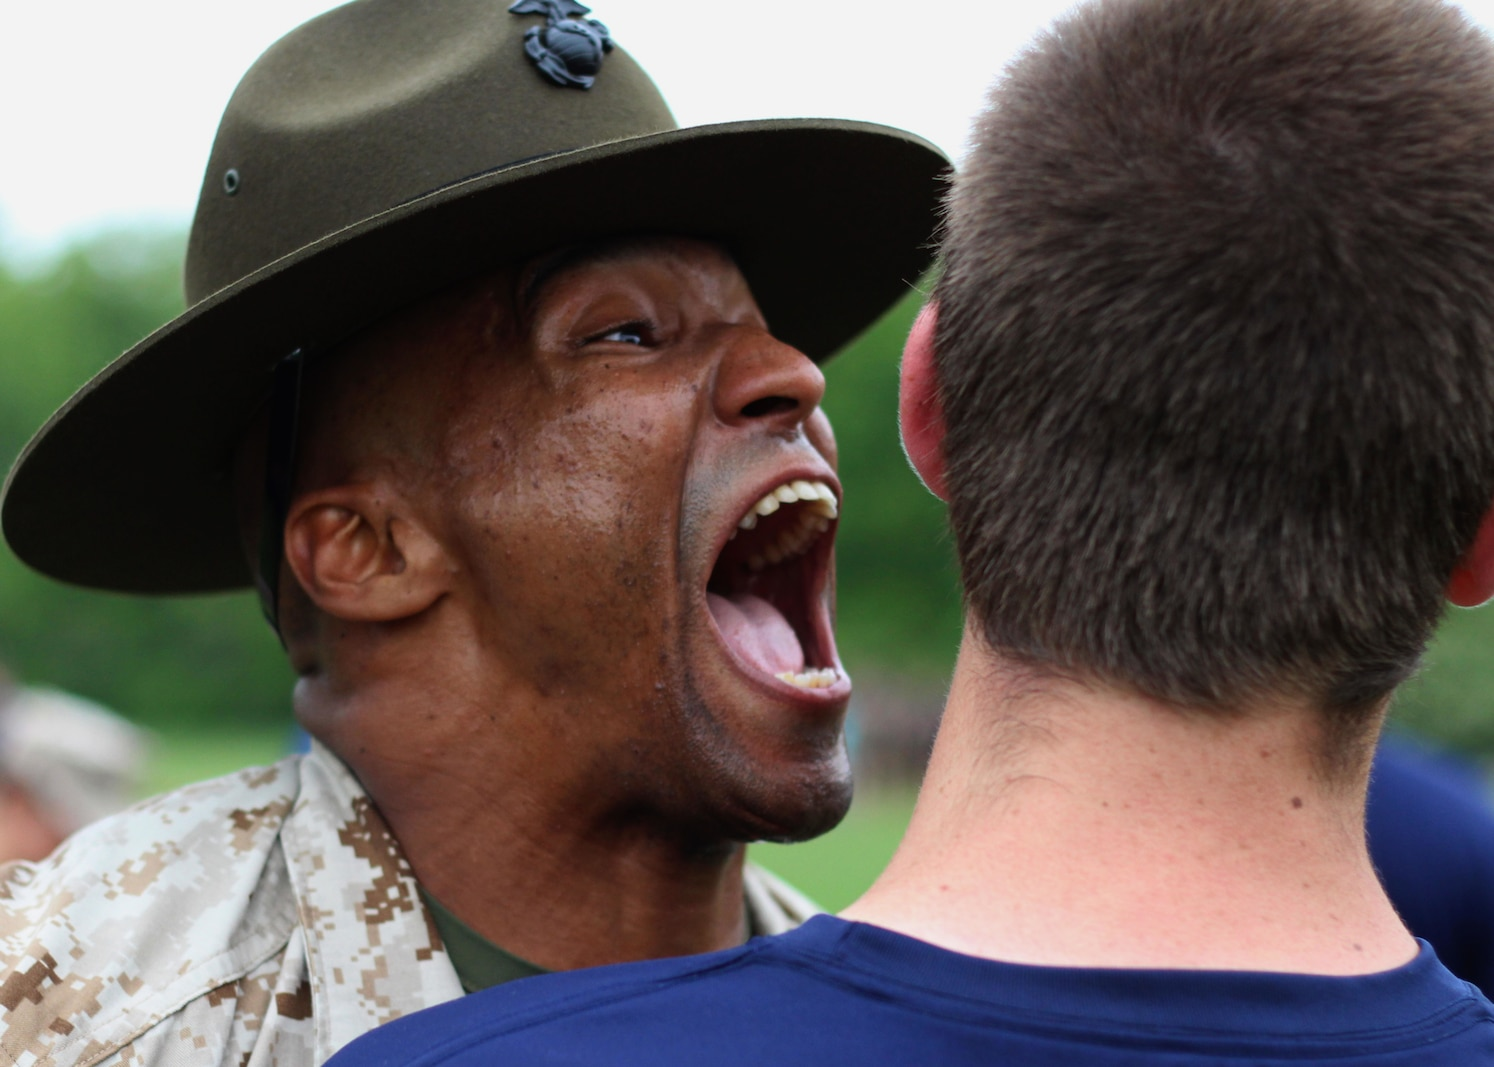 Marines from Recruiting Station Indianapolis hosted their annual statewide pool function in Indianapolis, Indiana May 16, 2015. The young men and woman train to become the next generation of America's tough, smart and elite warriors by preparing their minds and bodies for the rigors of Marine Corps recruit training.Photo by Sgt. Tyler S. Mitchell